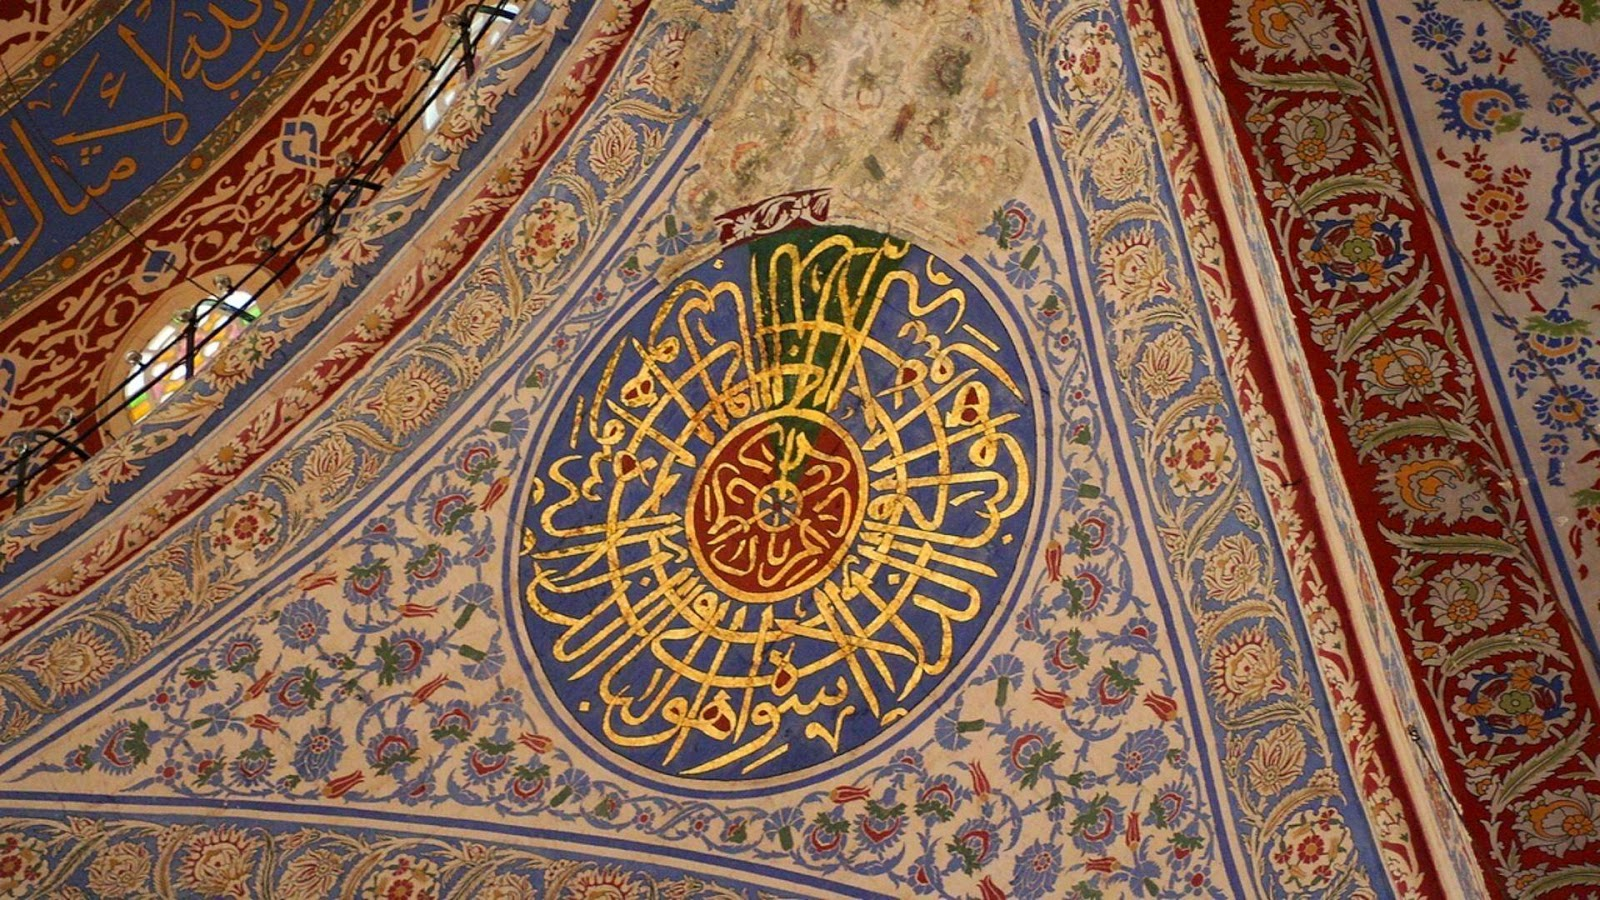 Islamic Blog About Muslims: Islamic Art